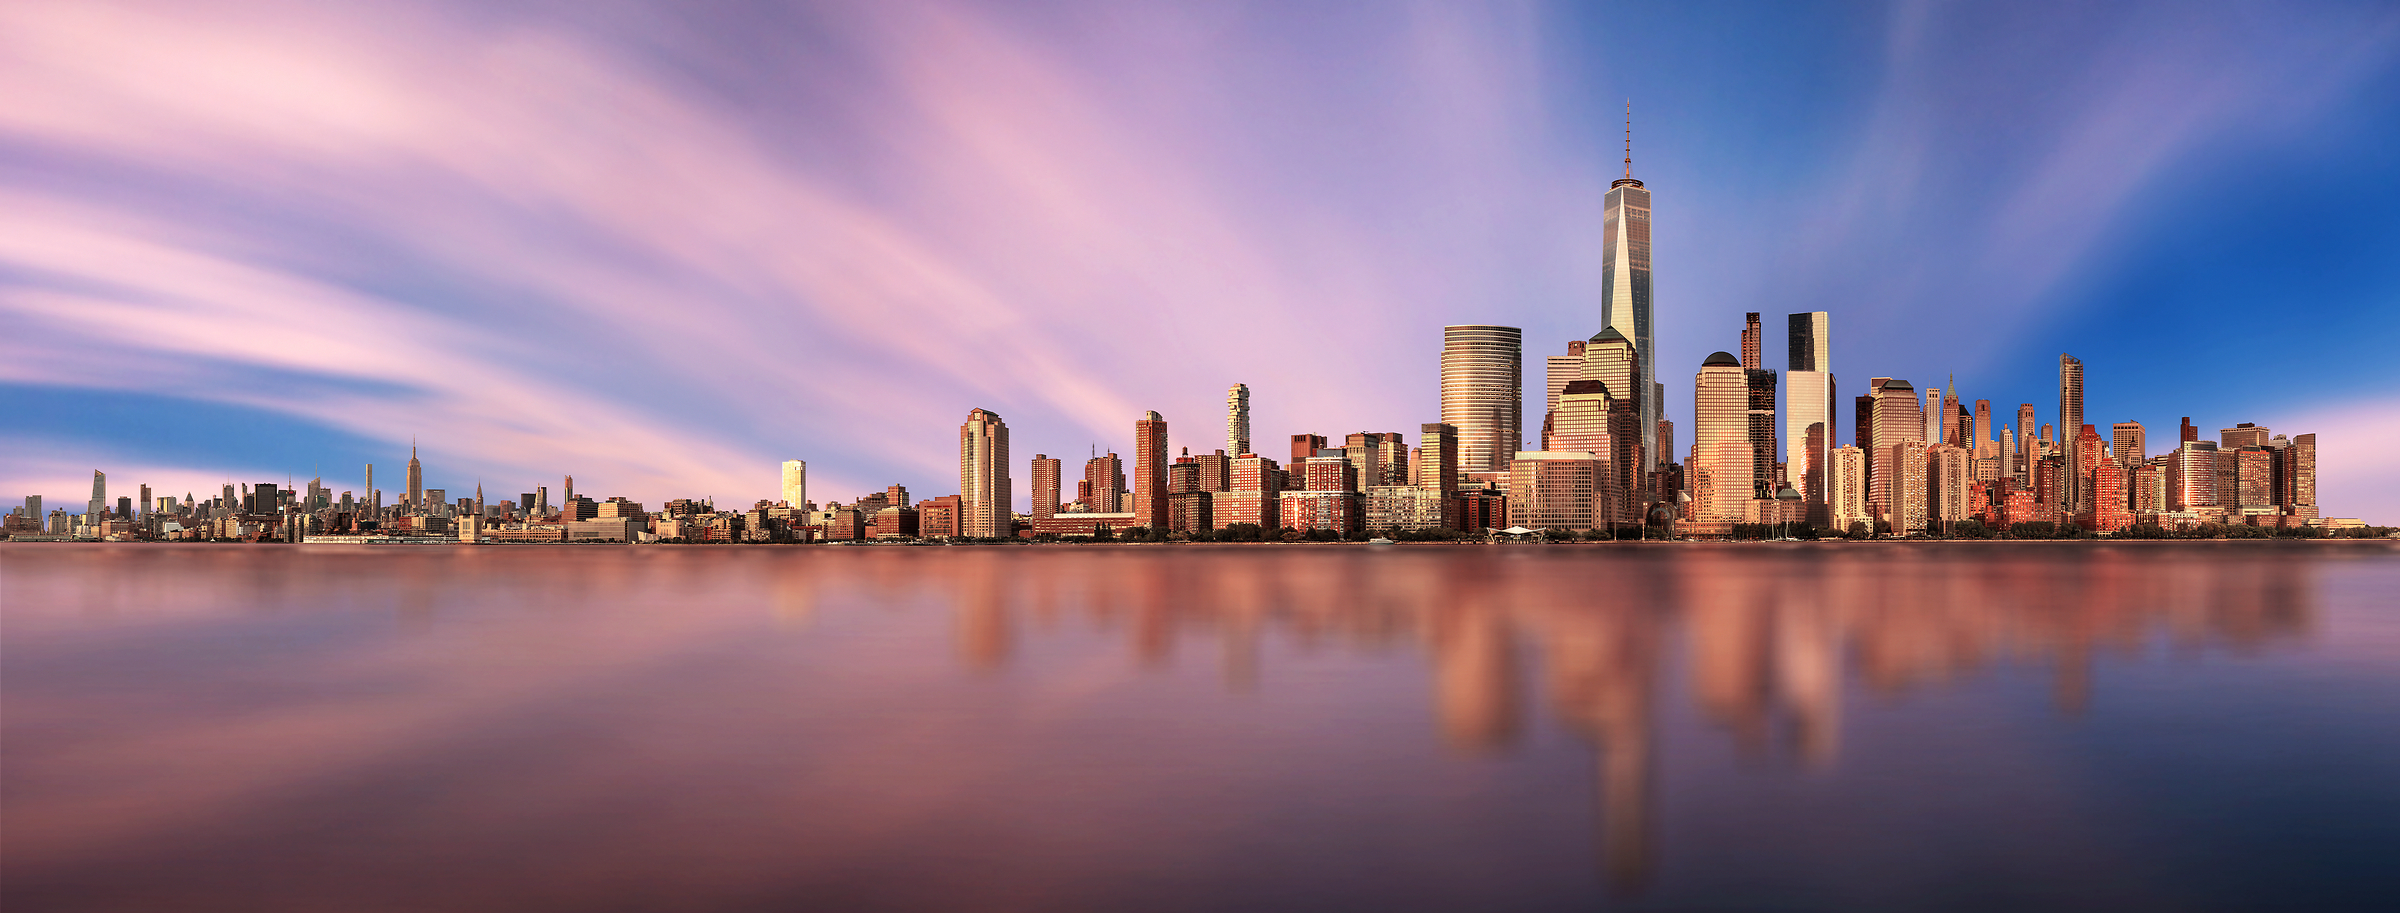 7,070 megapixels! An incredibly high resolution gigapanorama photo of sunset and the New York City skyline; cityscape fine art print created by Chris Collacott in Manhattan, NYC